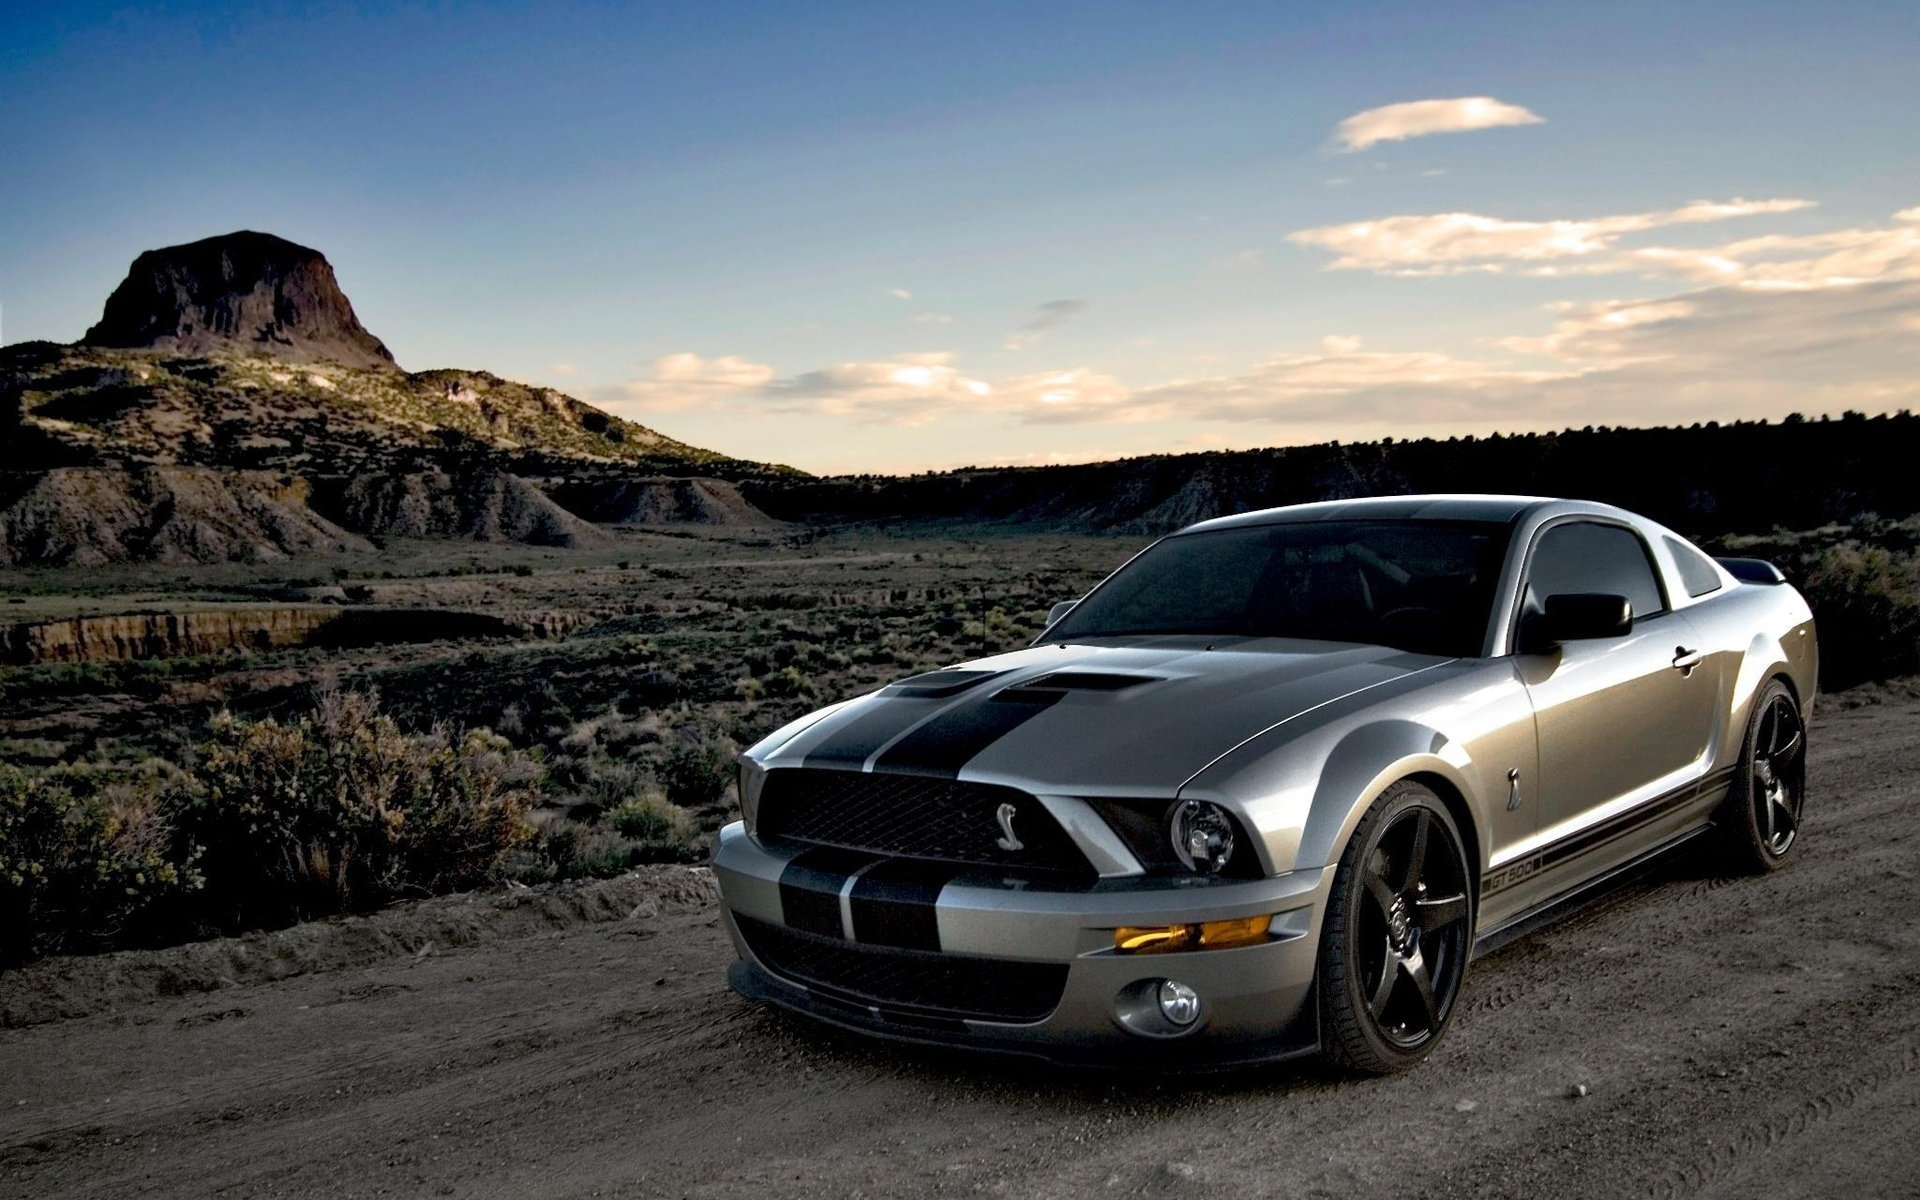 Shelby Gt500 Mustang Desktop Background Screensaver Apps Directories 1920x1200